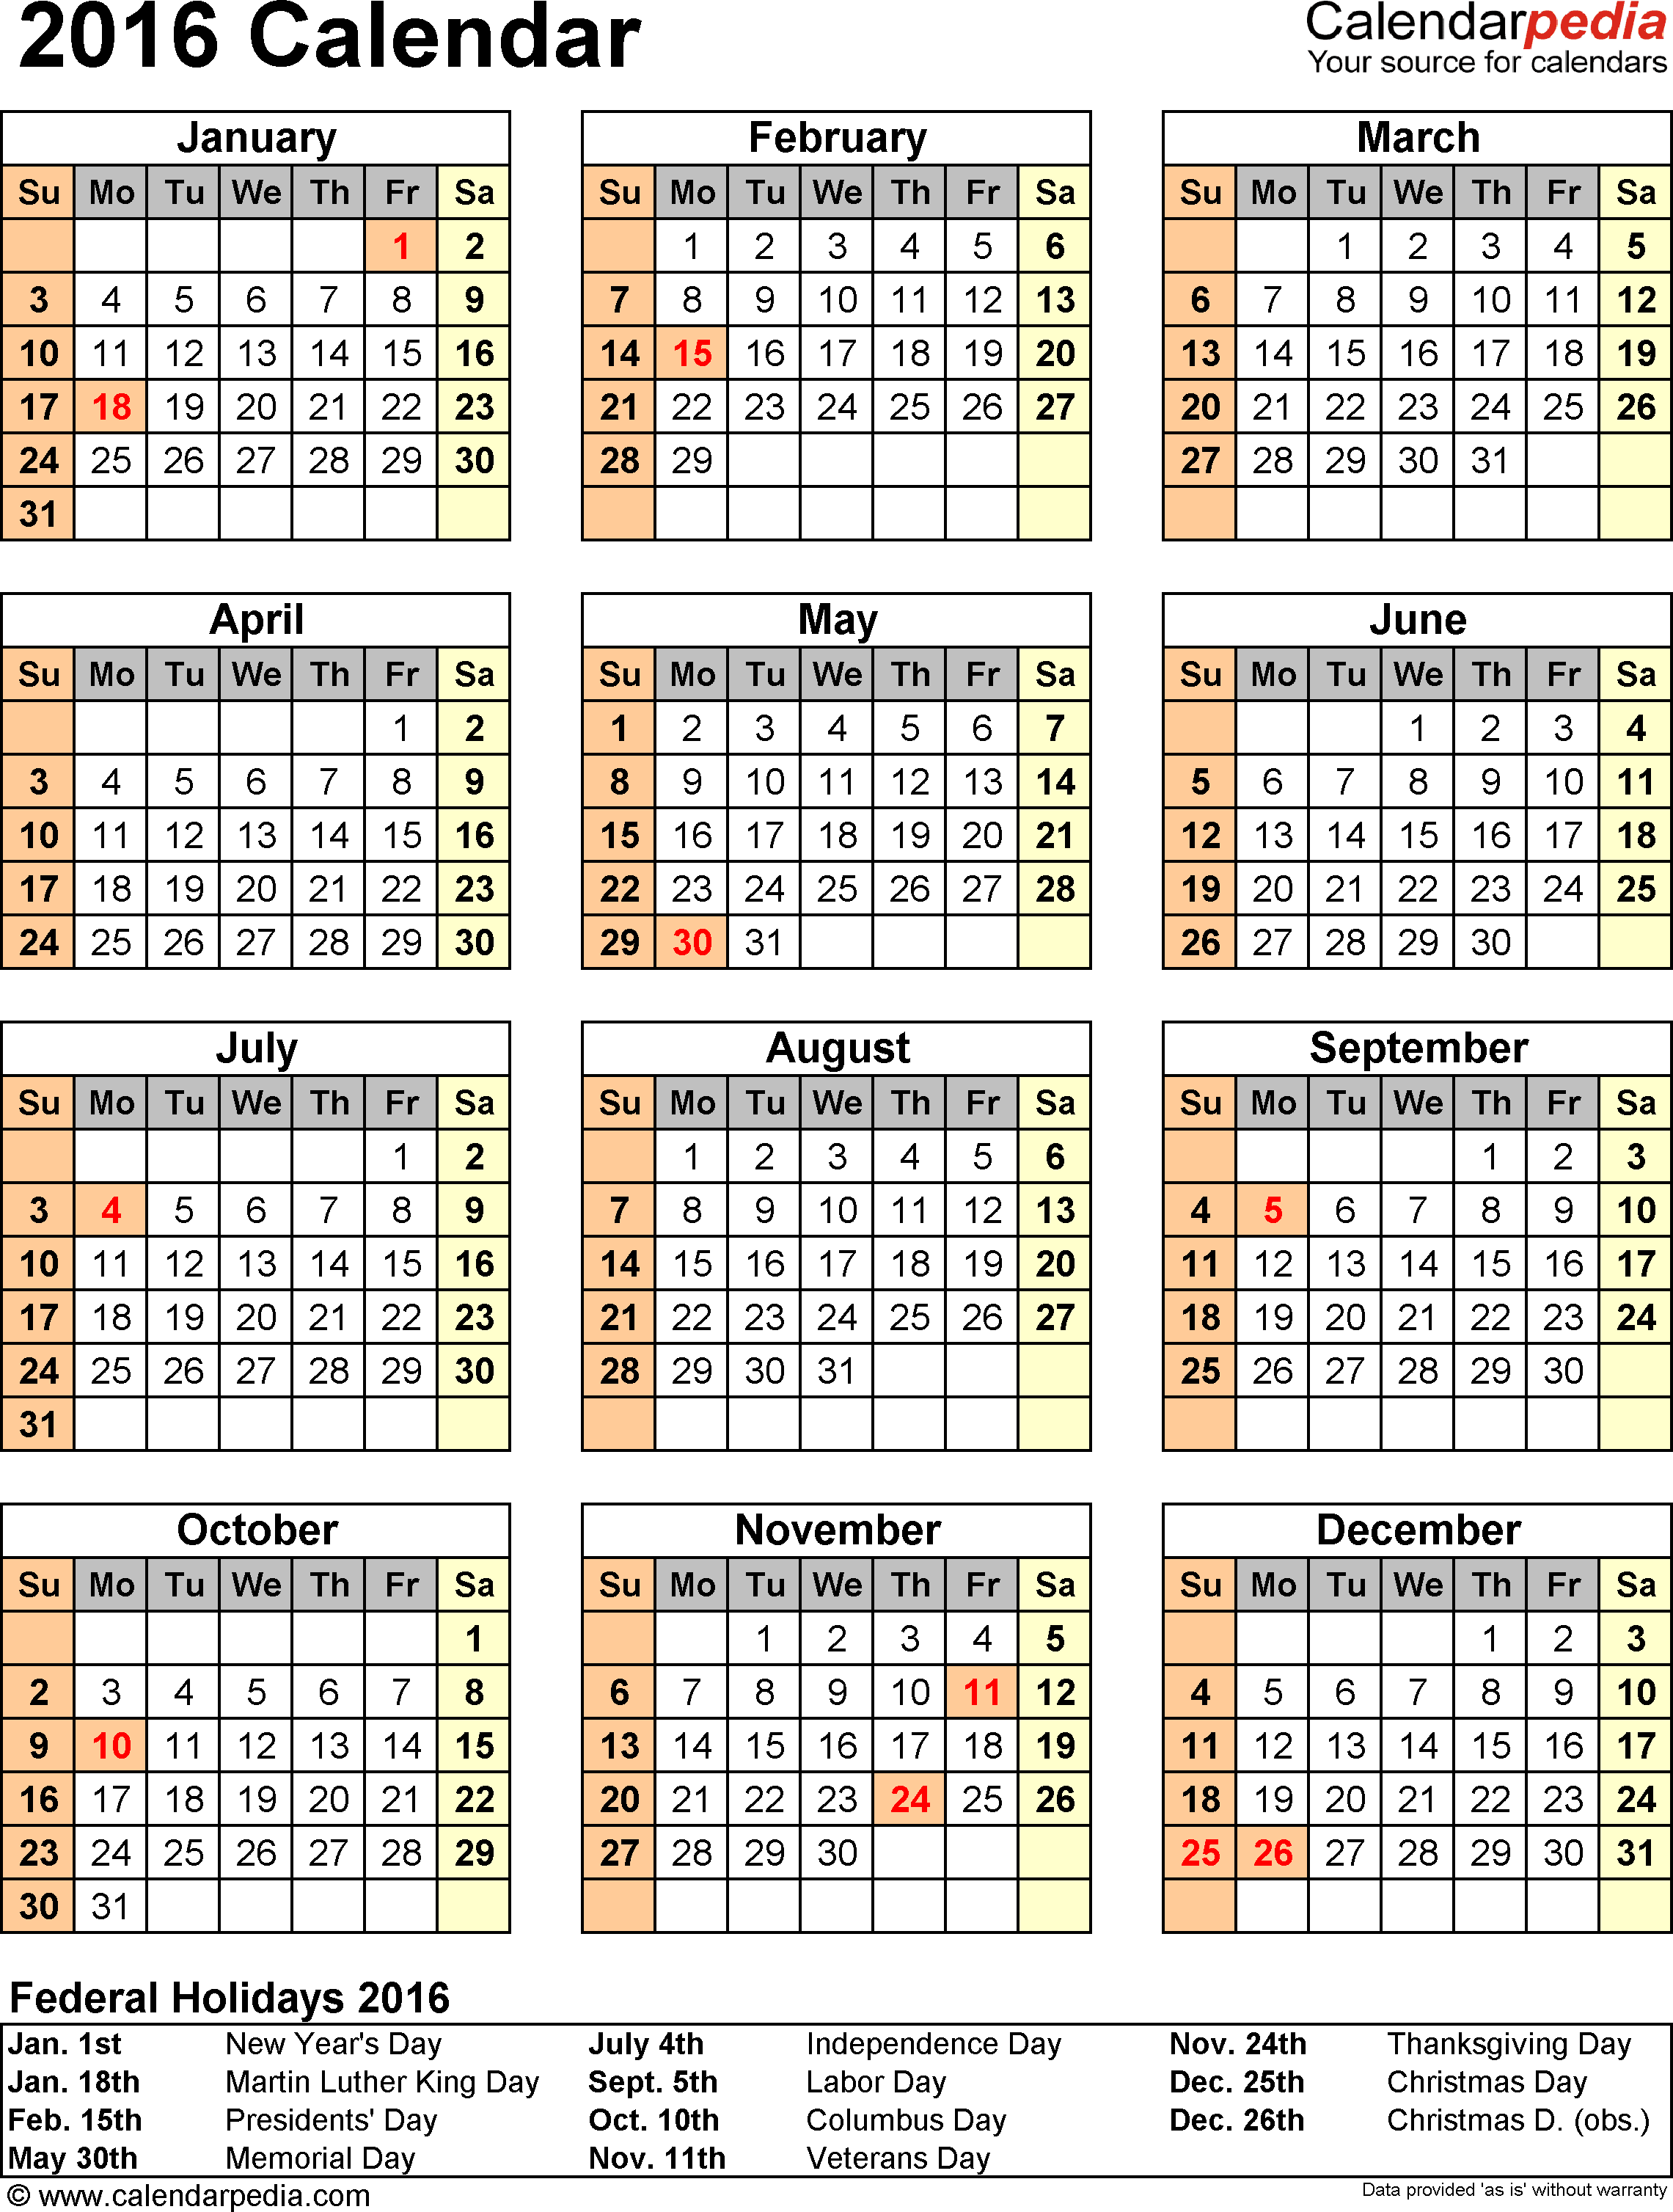 Template 10: 2016 Calendar for PDF, 1 page, year at a glance, portrait orientation